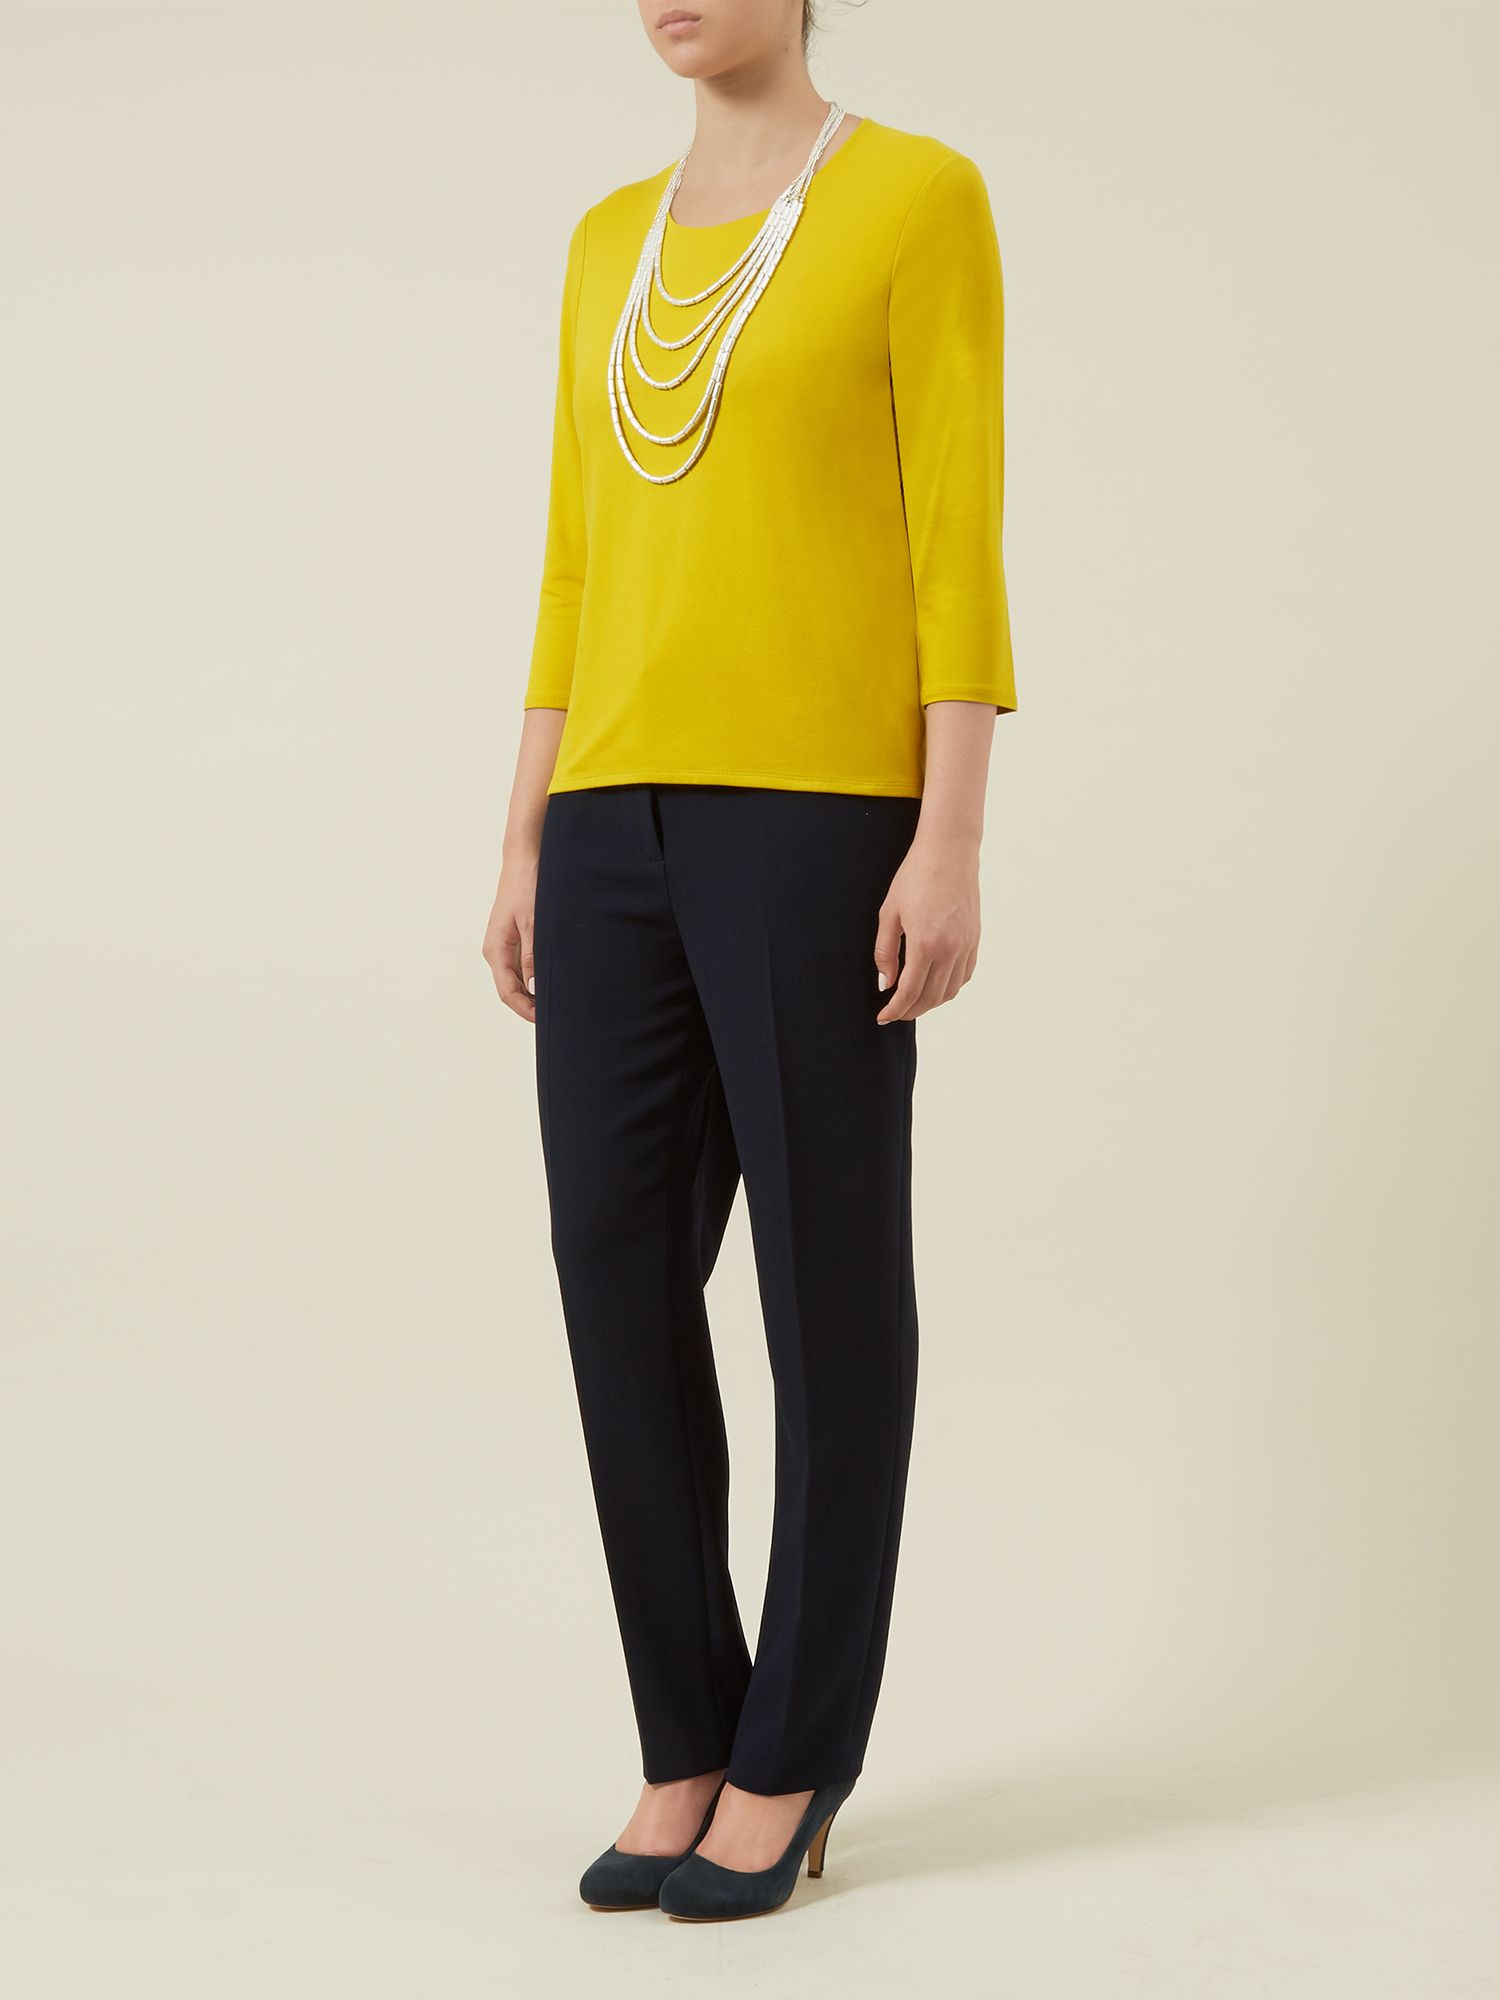 Ochre Basic Top